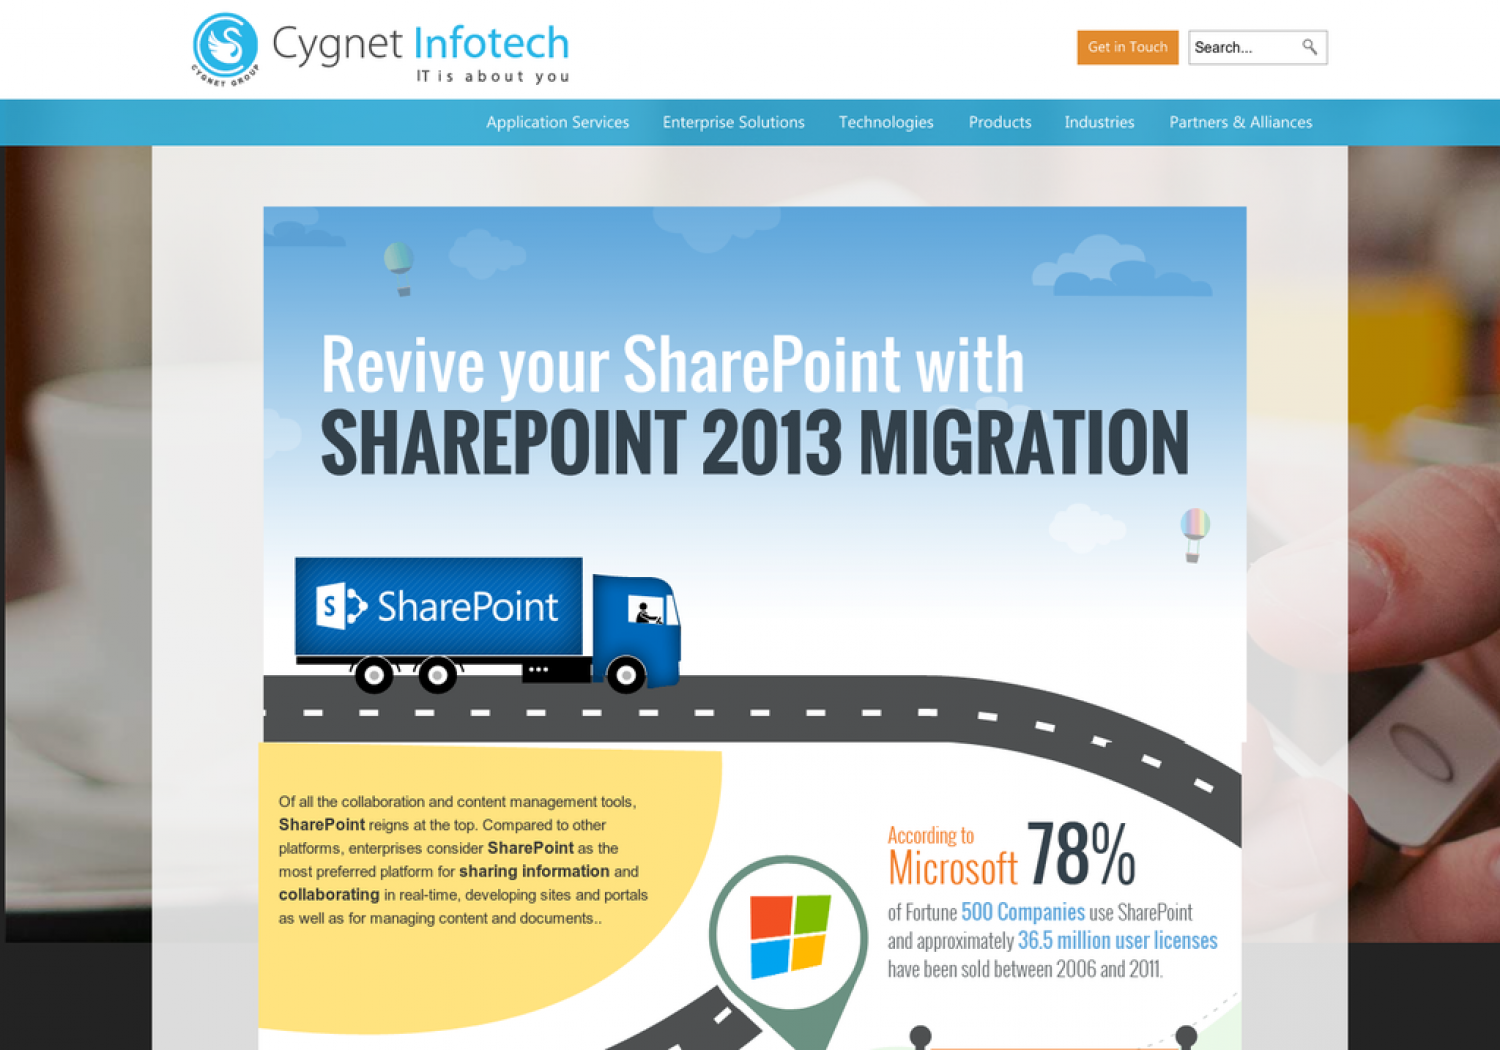 Revive your Sharepoint with SharePoint 2013 Migration Infographic